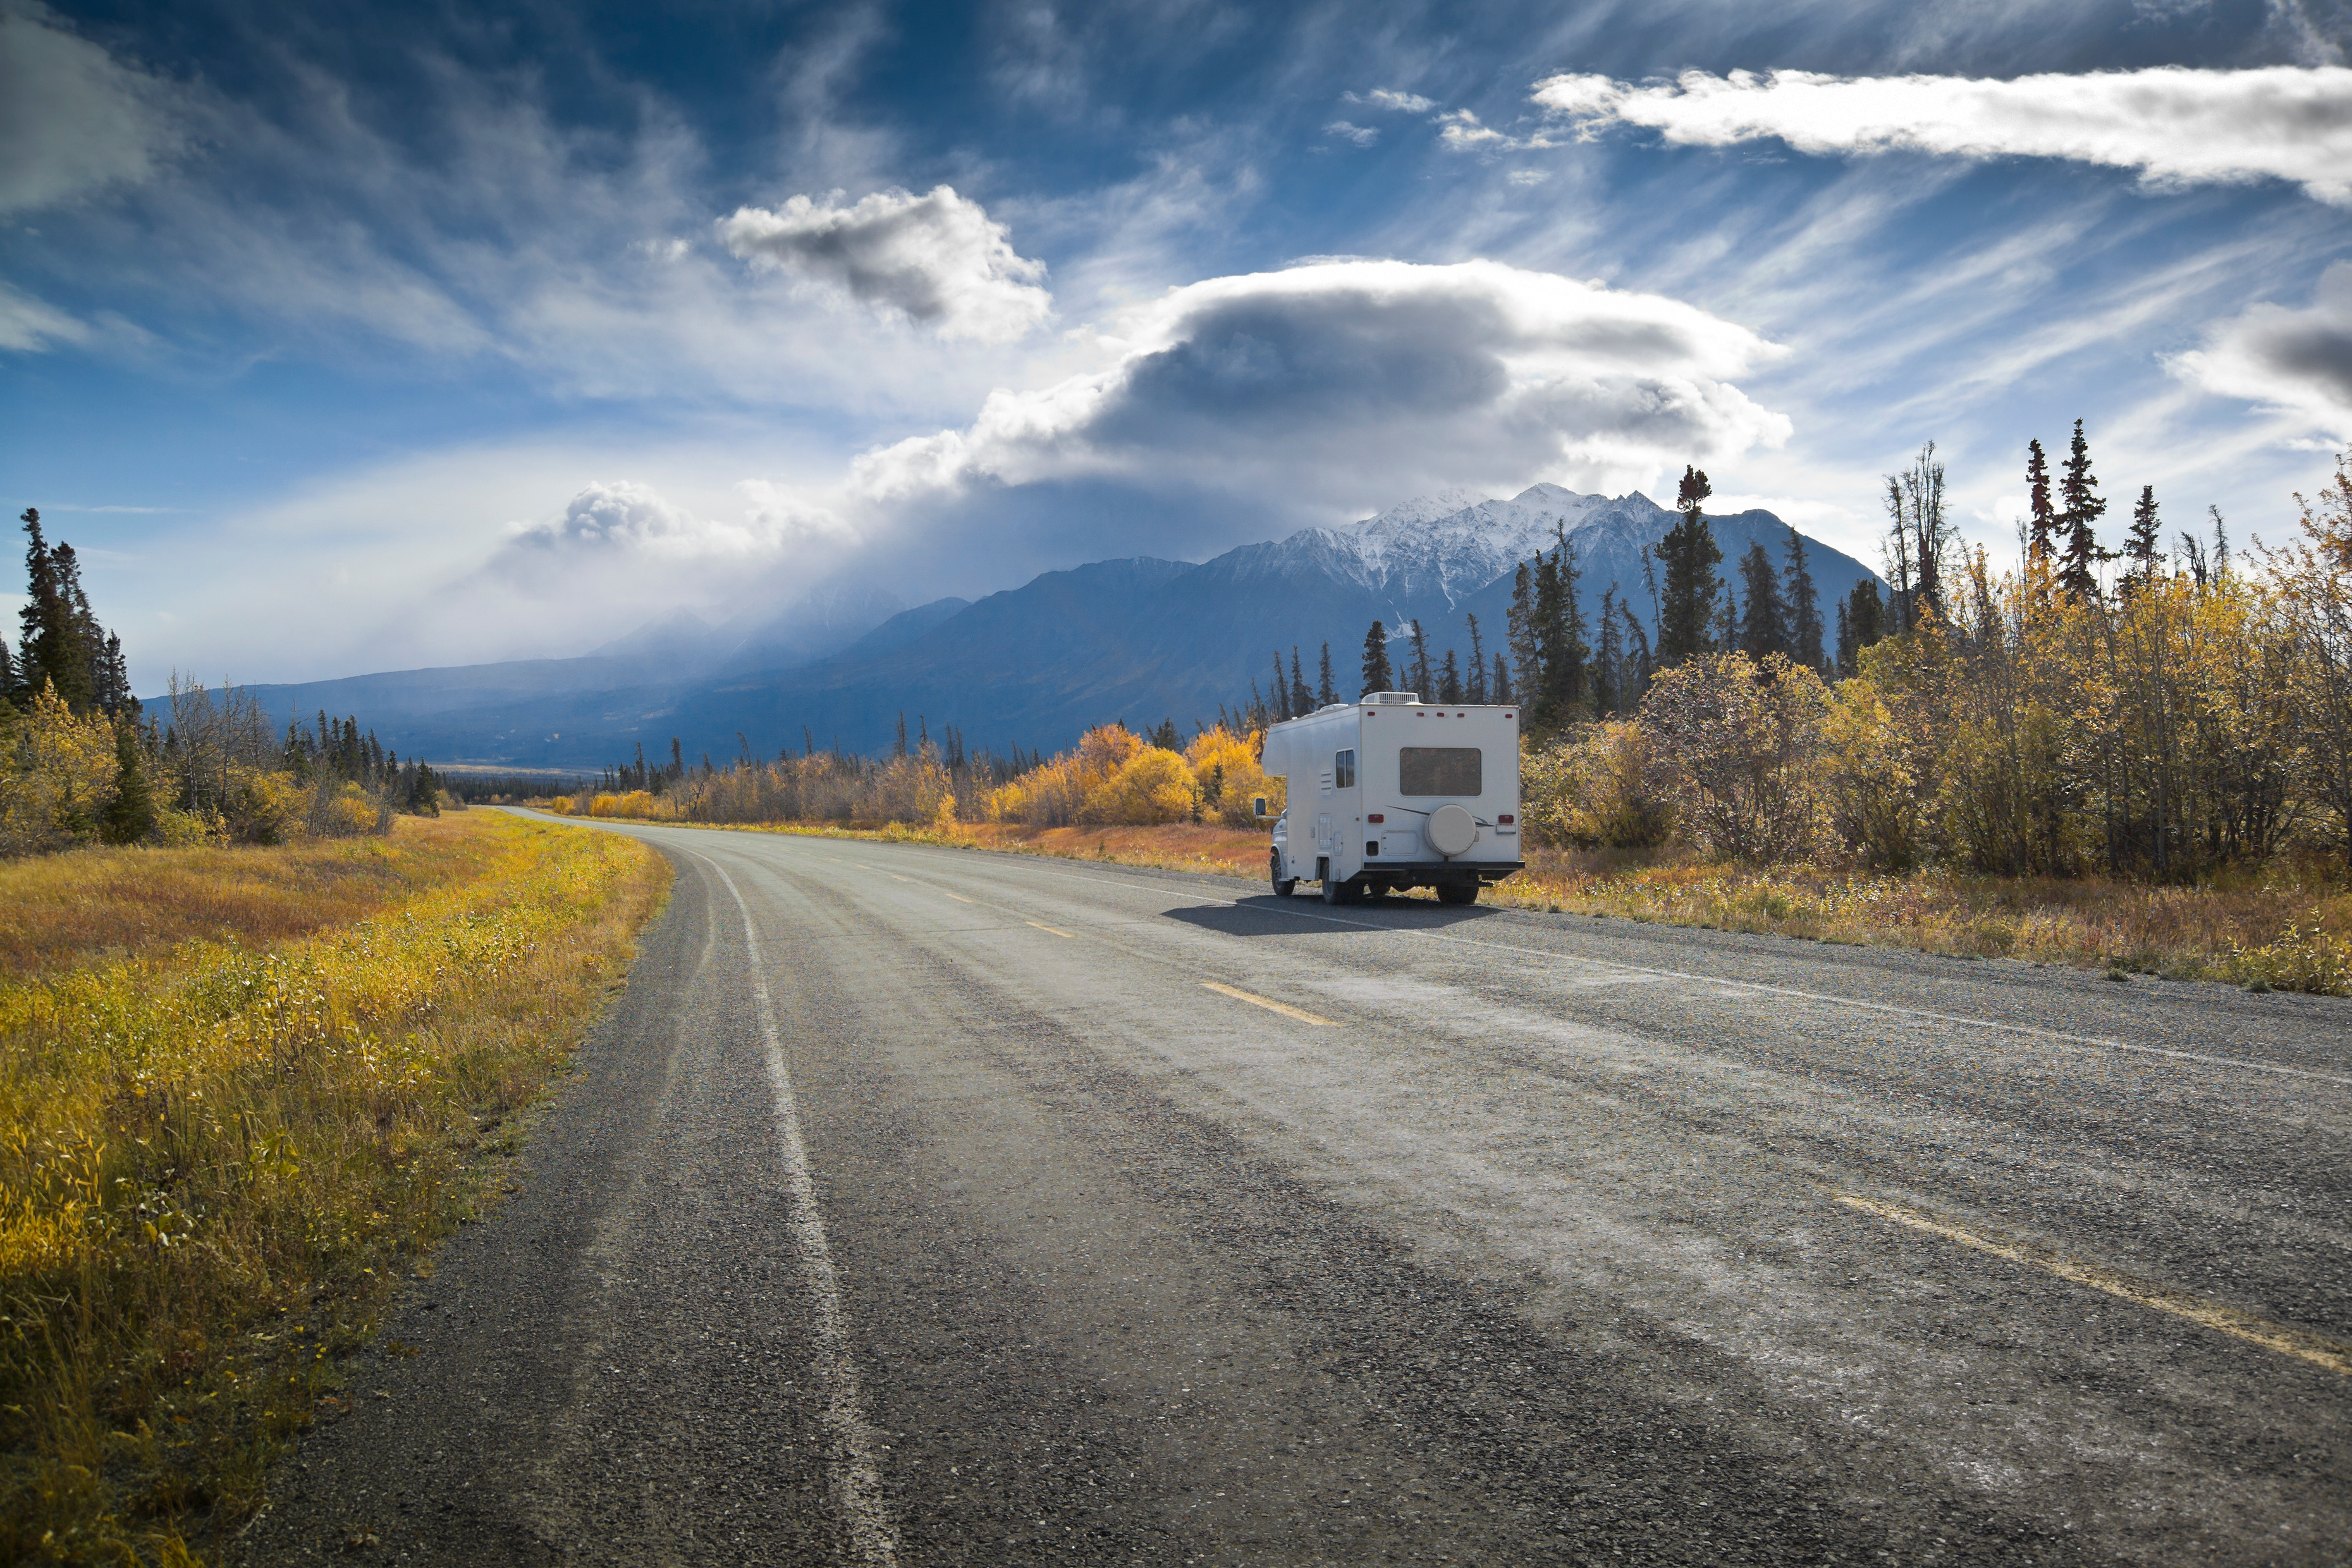 RV_Camper_on_the_road_heading_toward_mountains.jpg